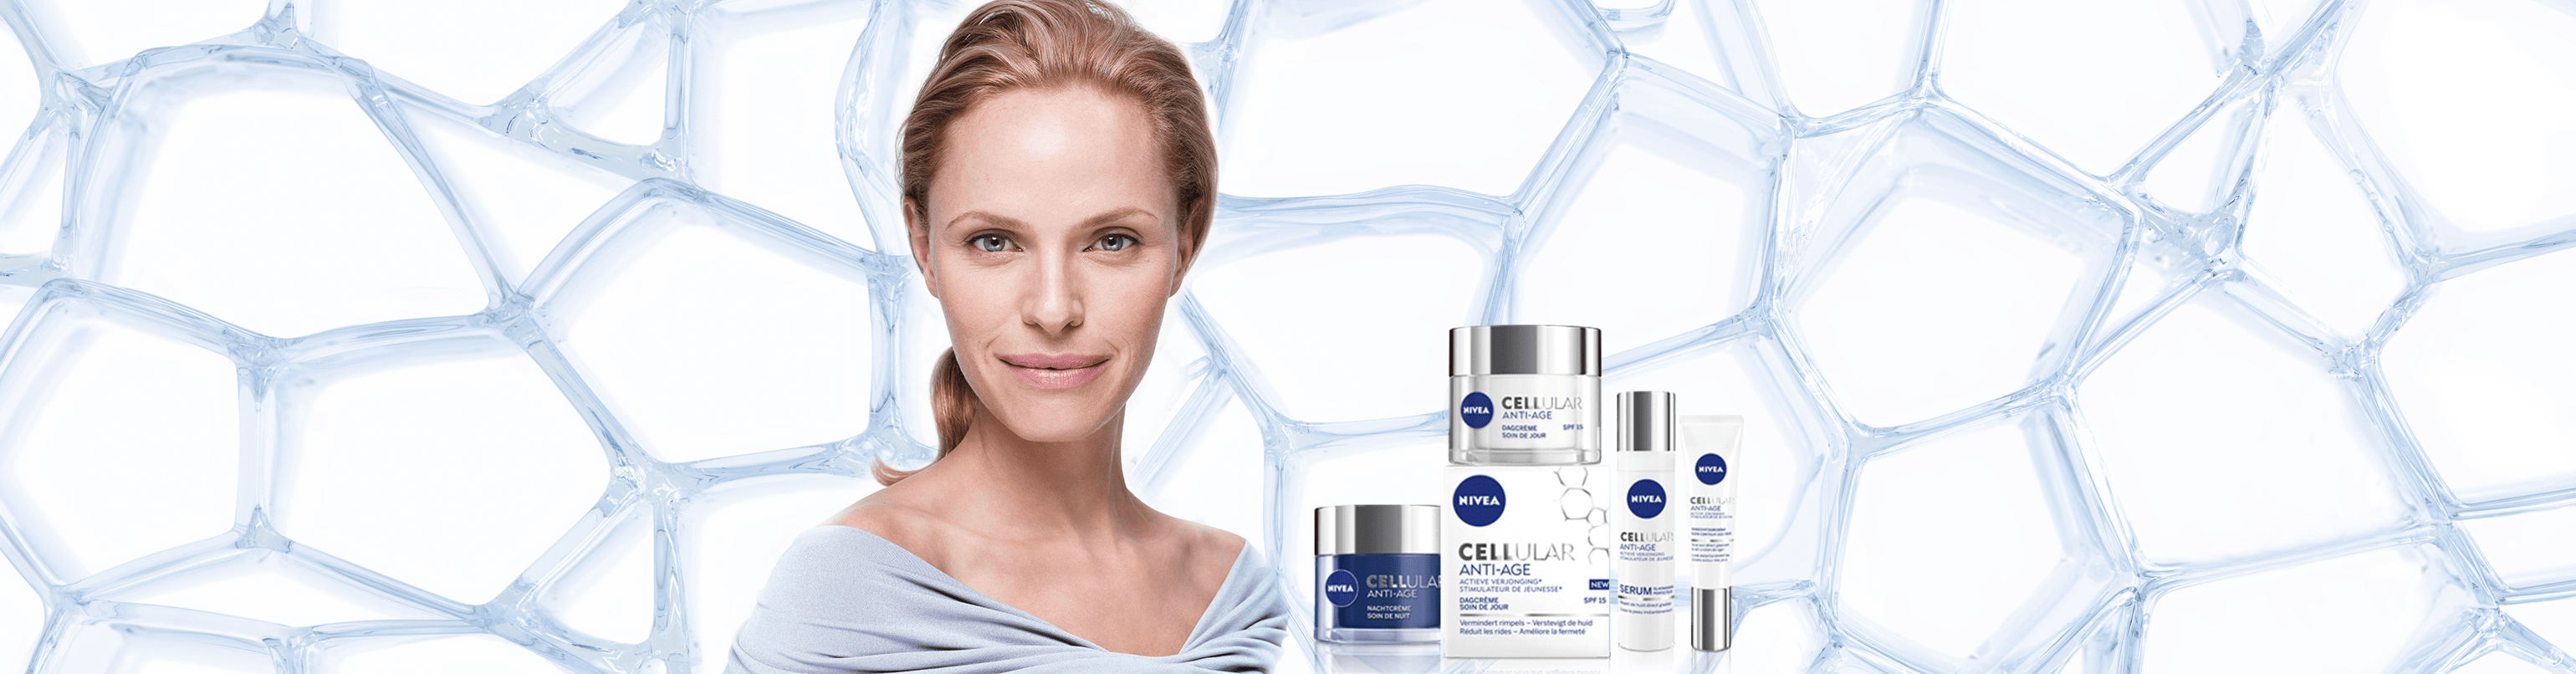 NIVEA CELLular Anti-Age facecare